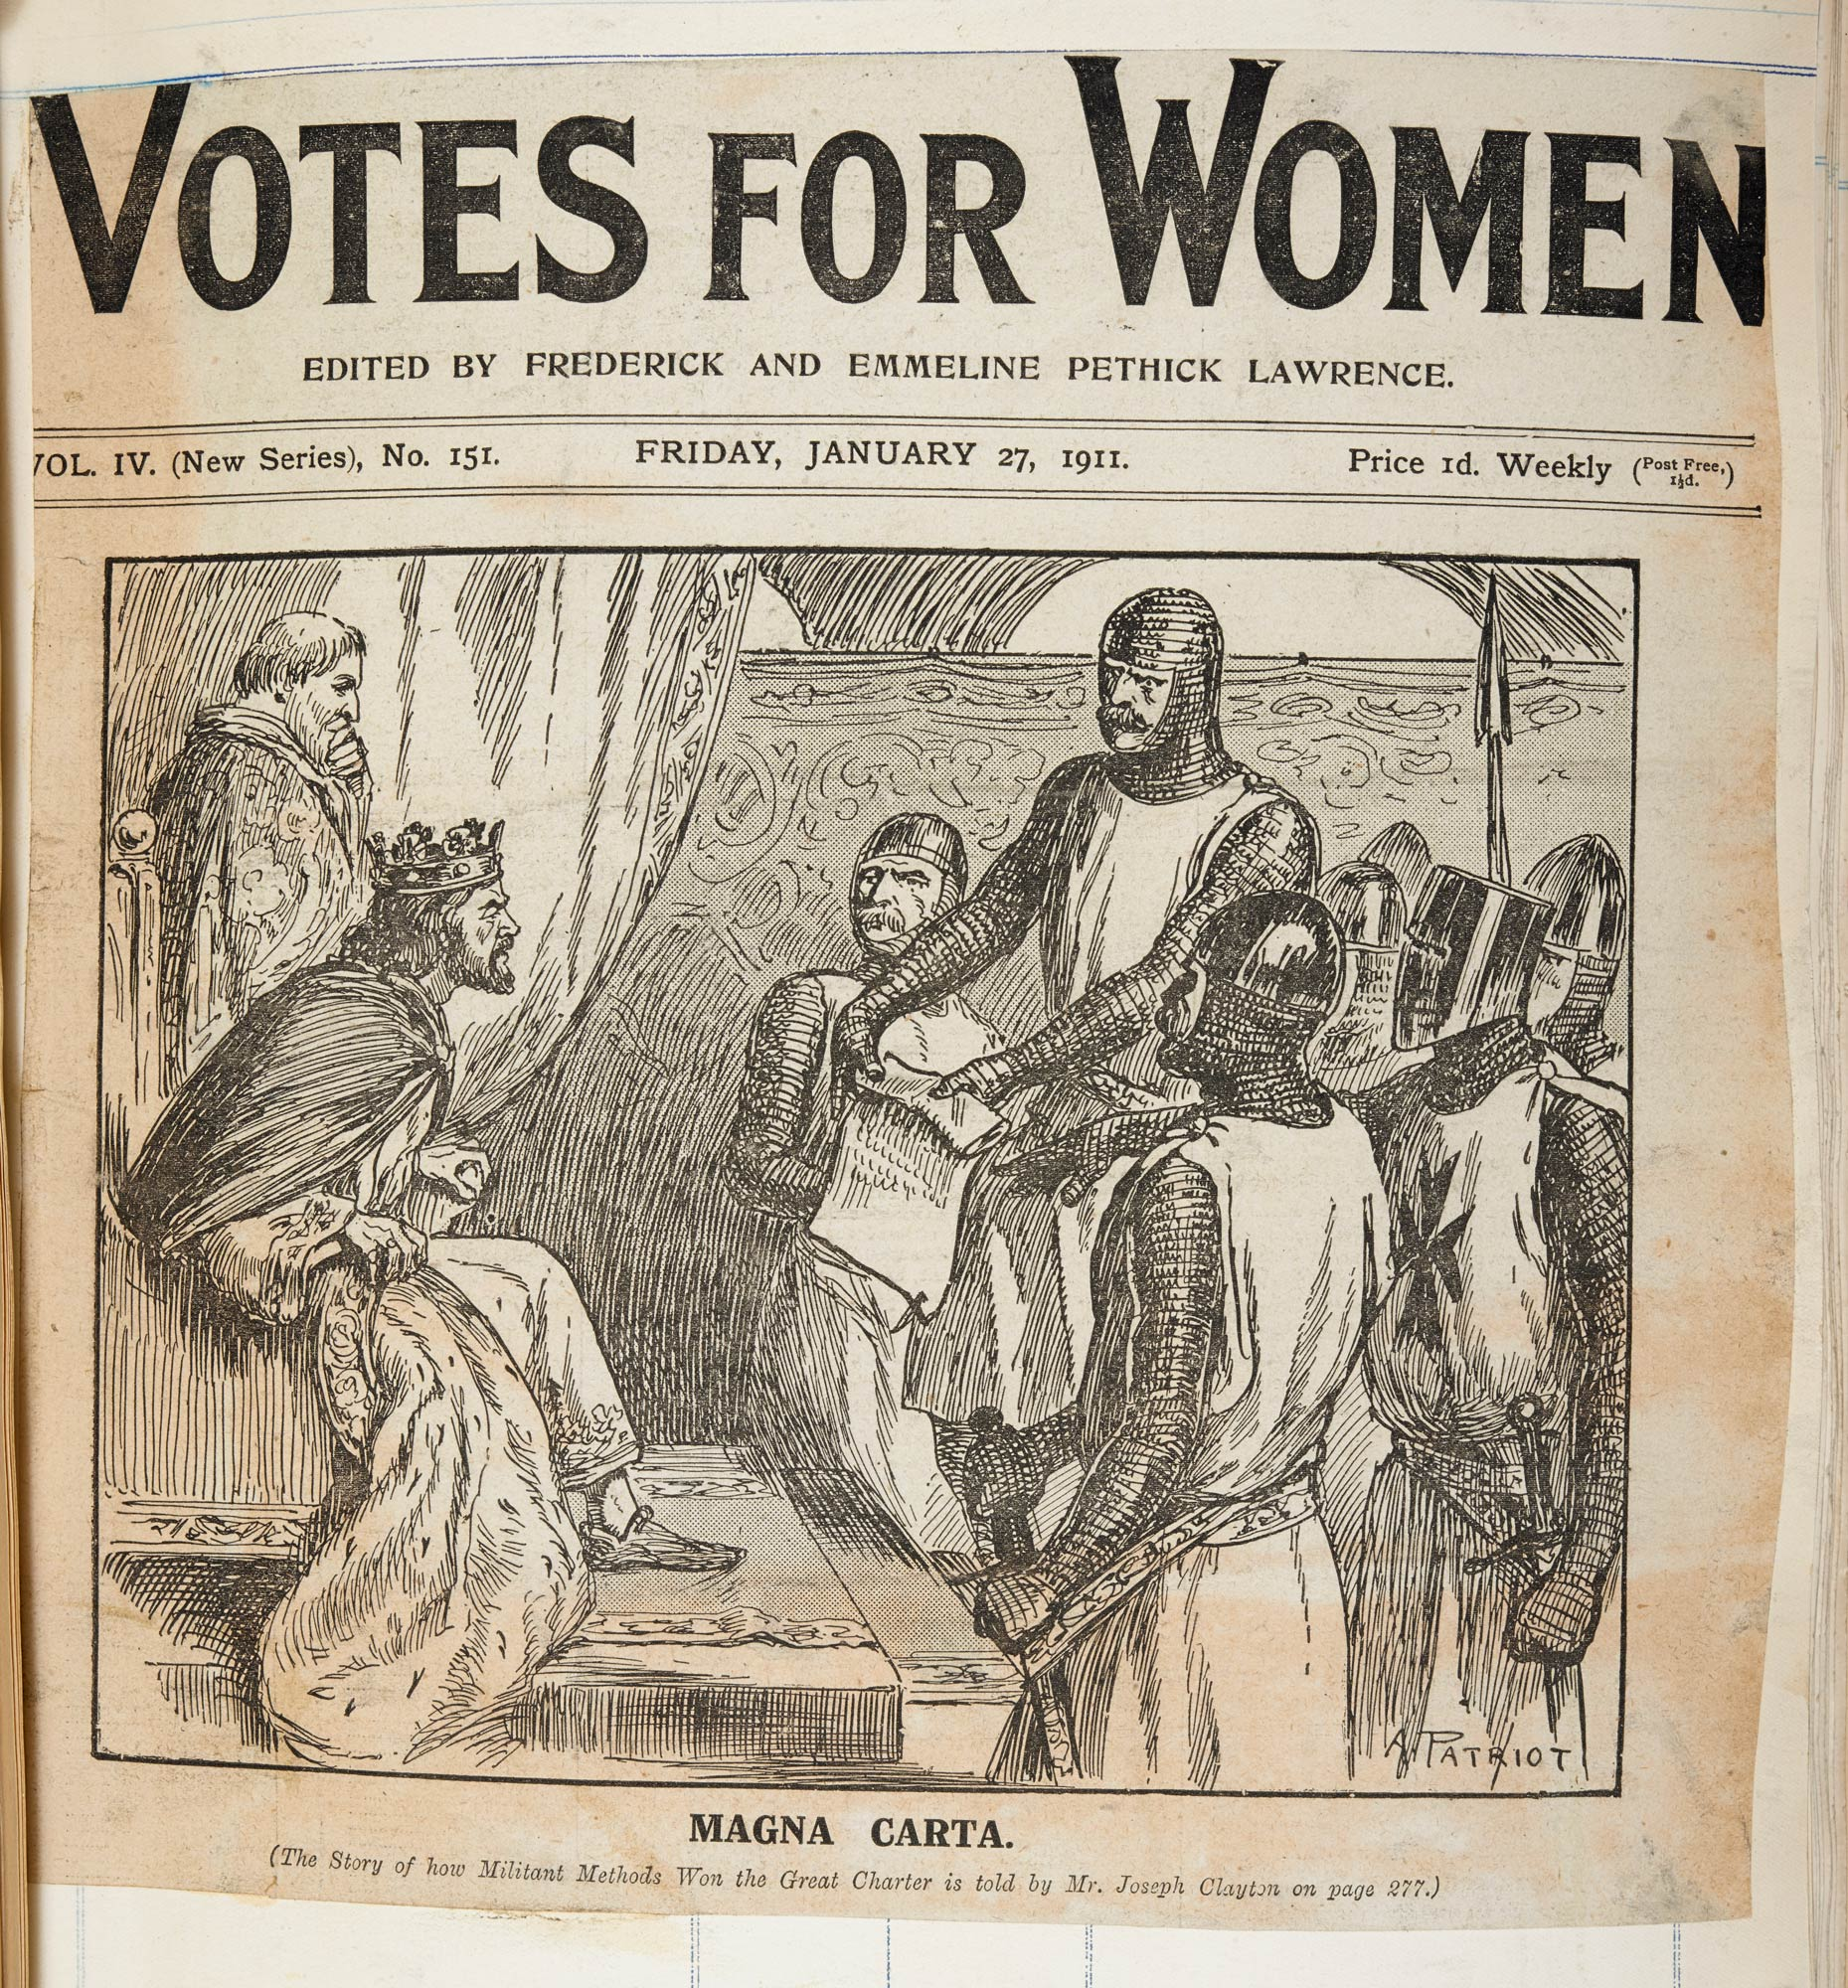 womens suffrage thesis While women gained equality in the west, the split between the national american women's suffrage association (nawsa) and the national women's party (nwp) allowed for a more versatile and far reaching national movement, and brought women the vote in a shorter period of time.